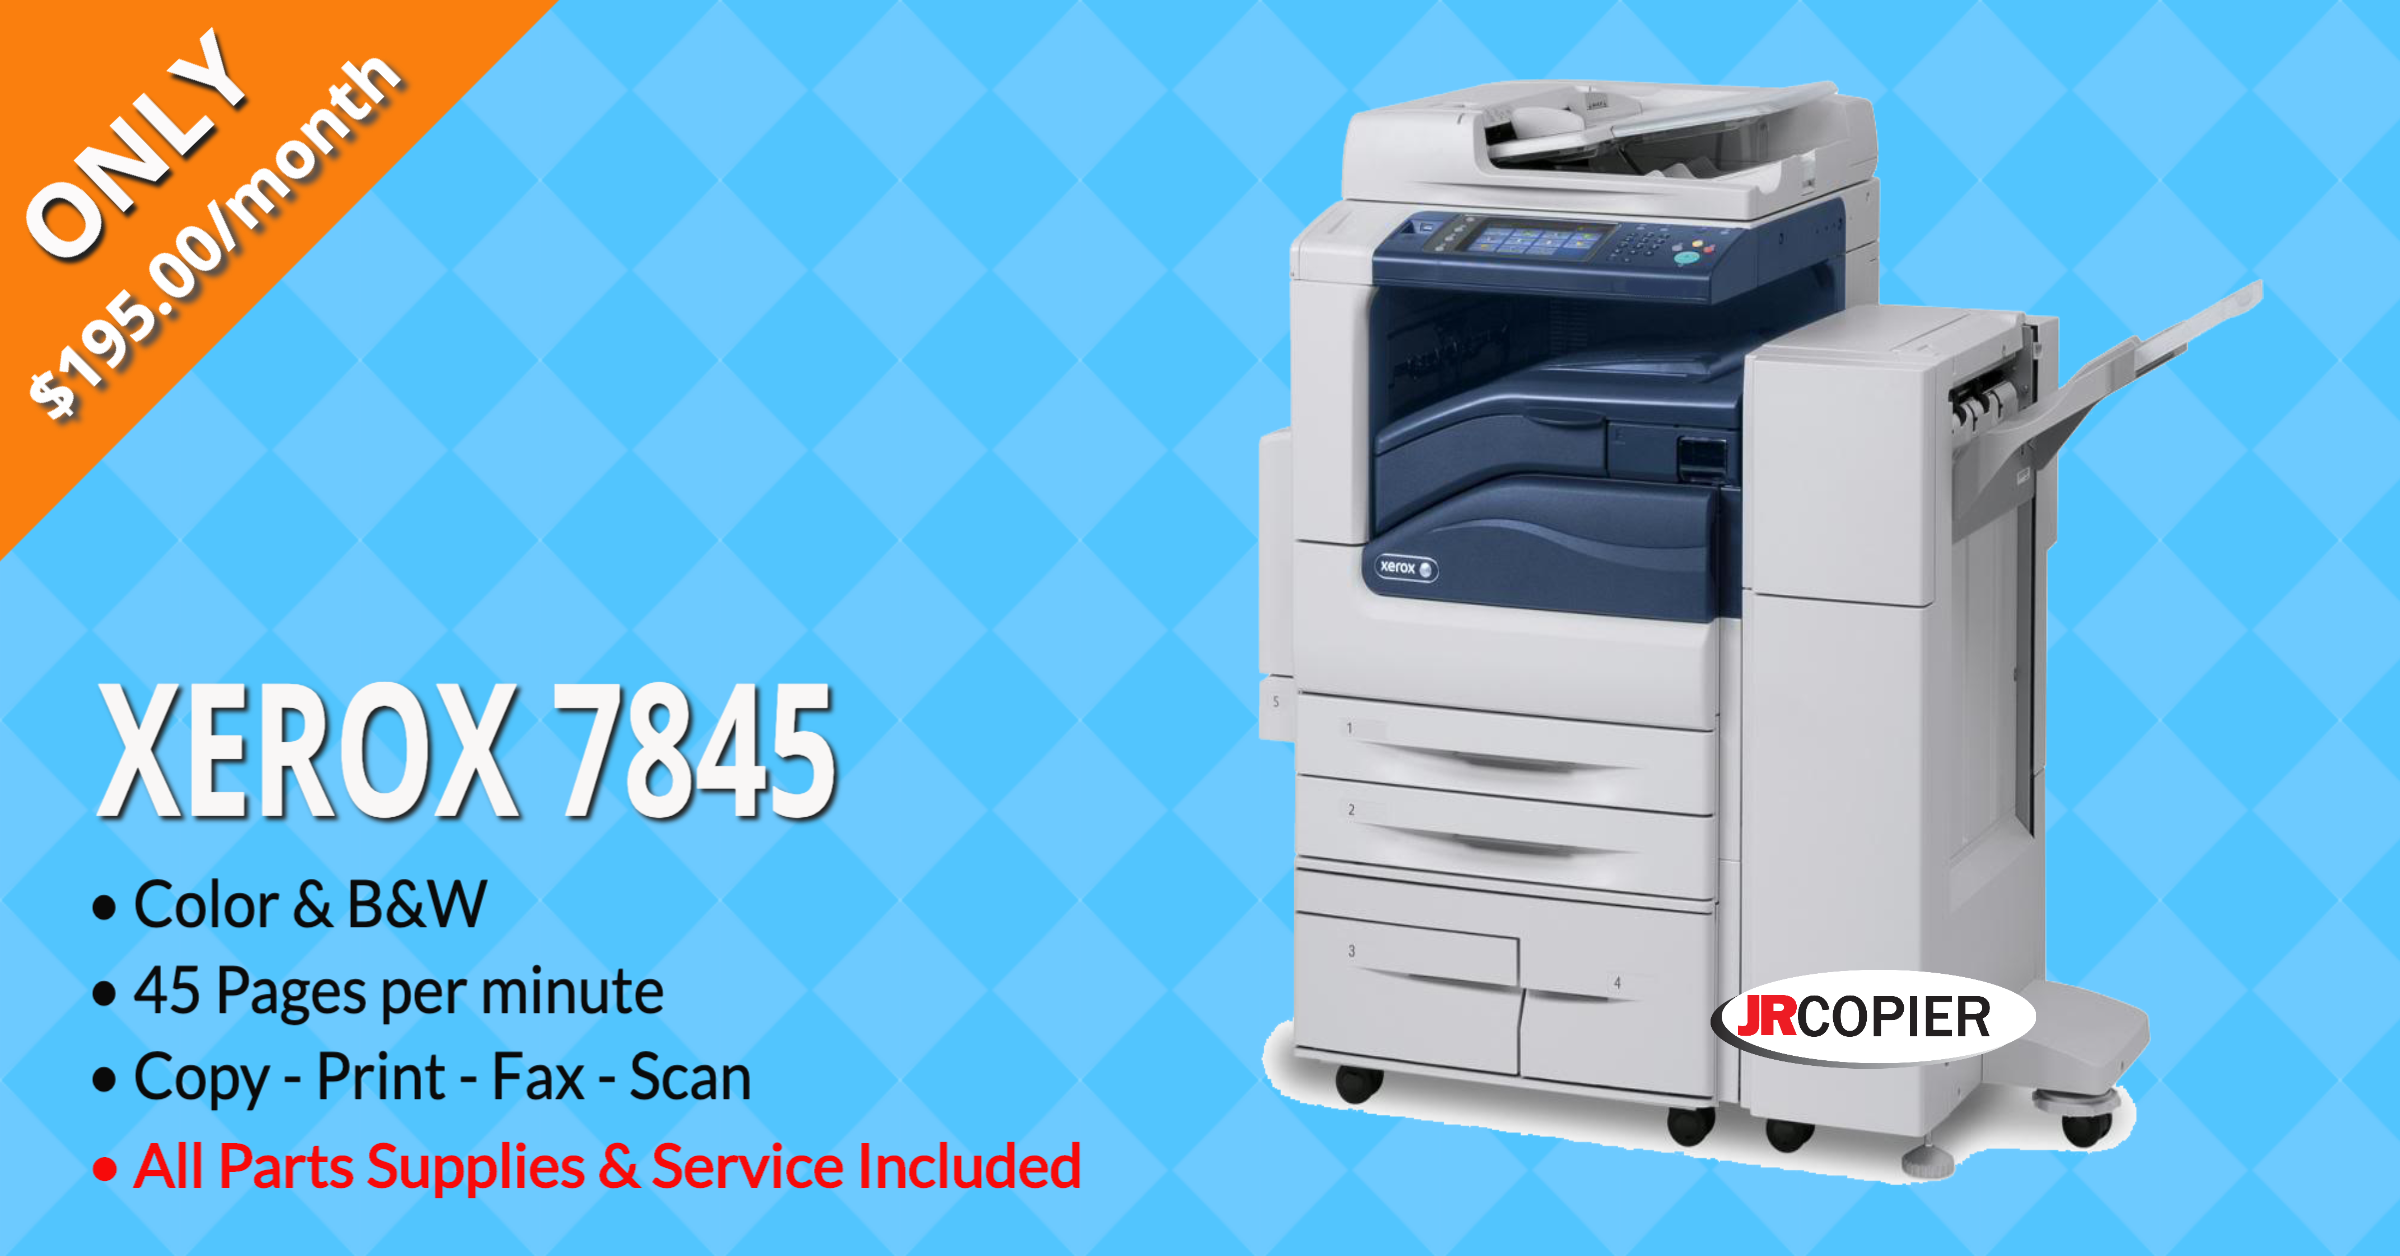 Color Copier 61011, 61073, 61111, 61115, 61130, 61131, 61132